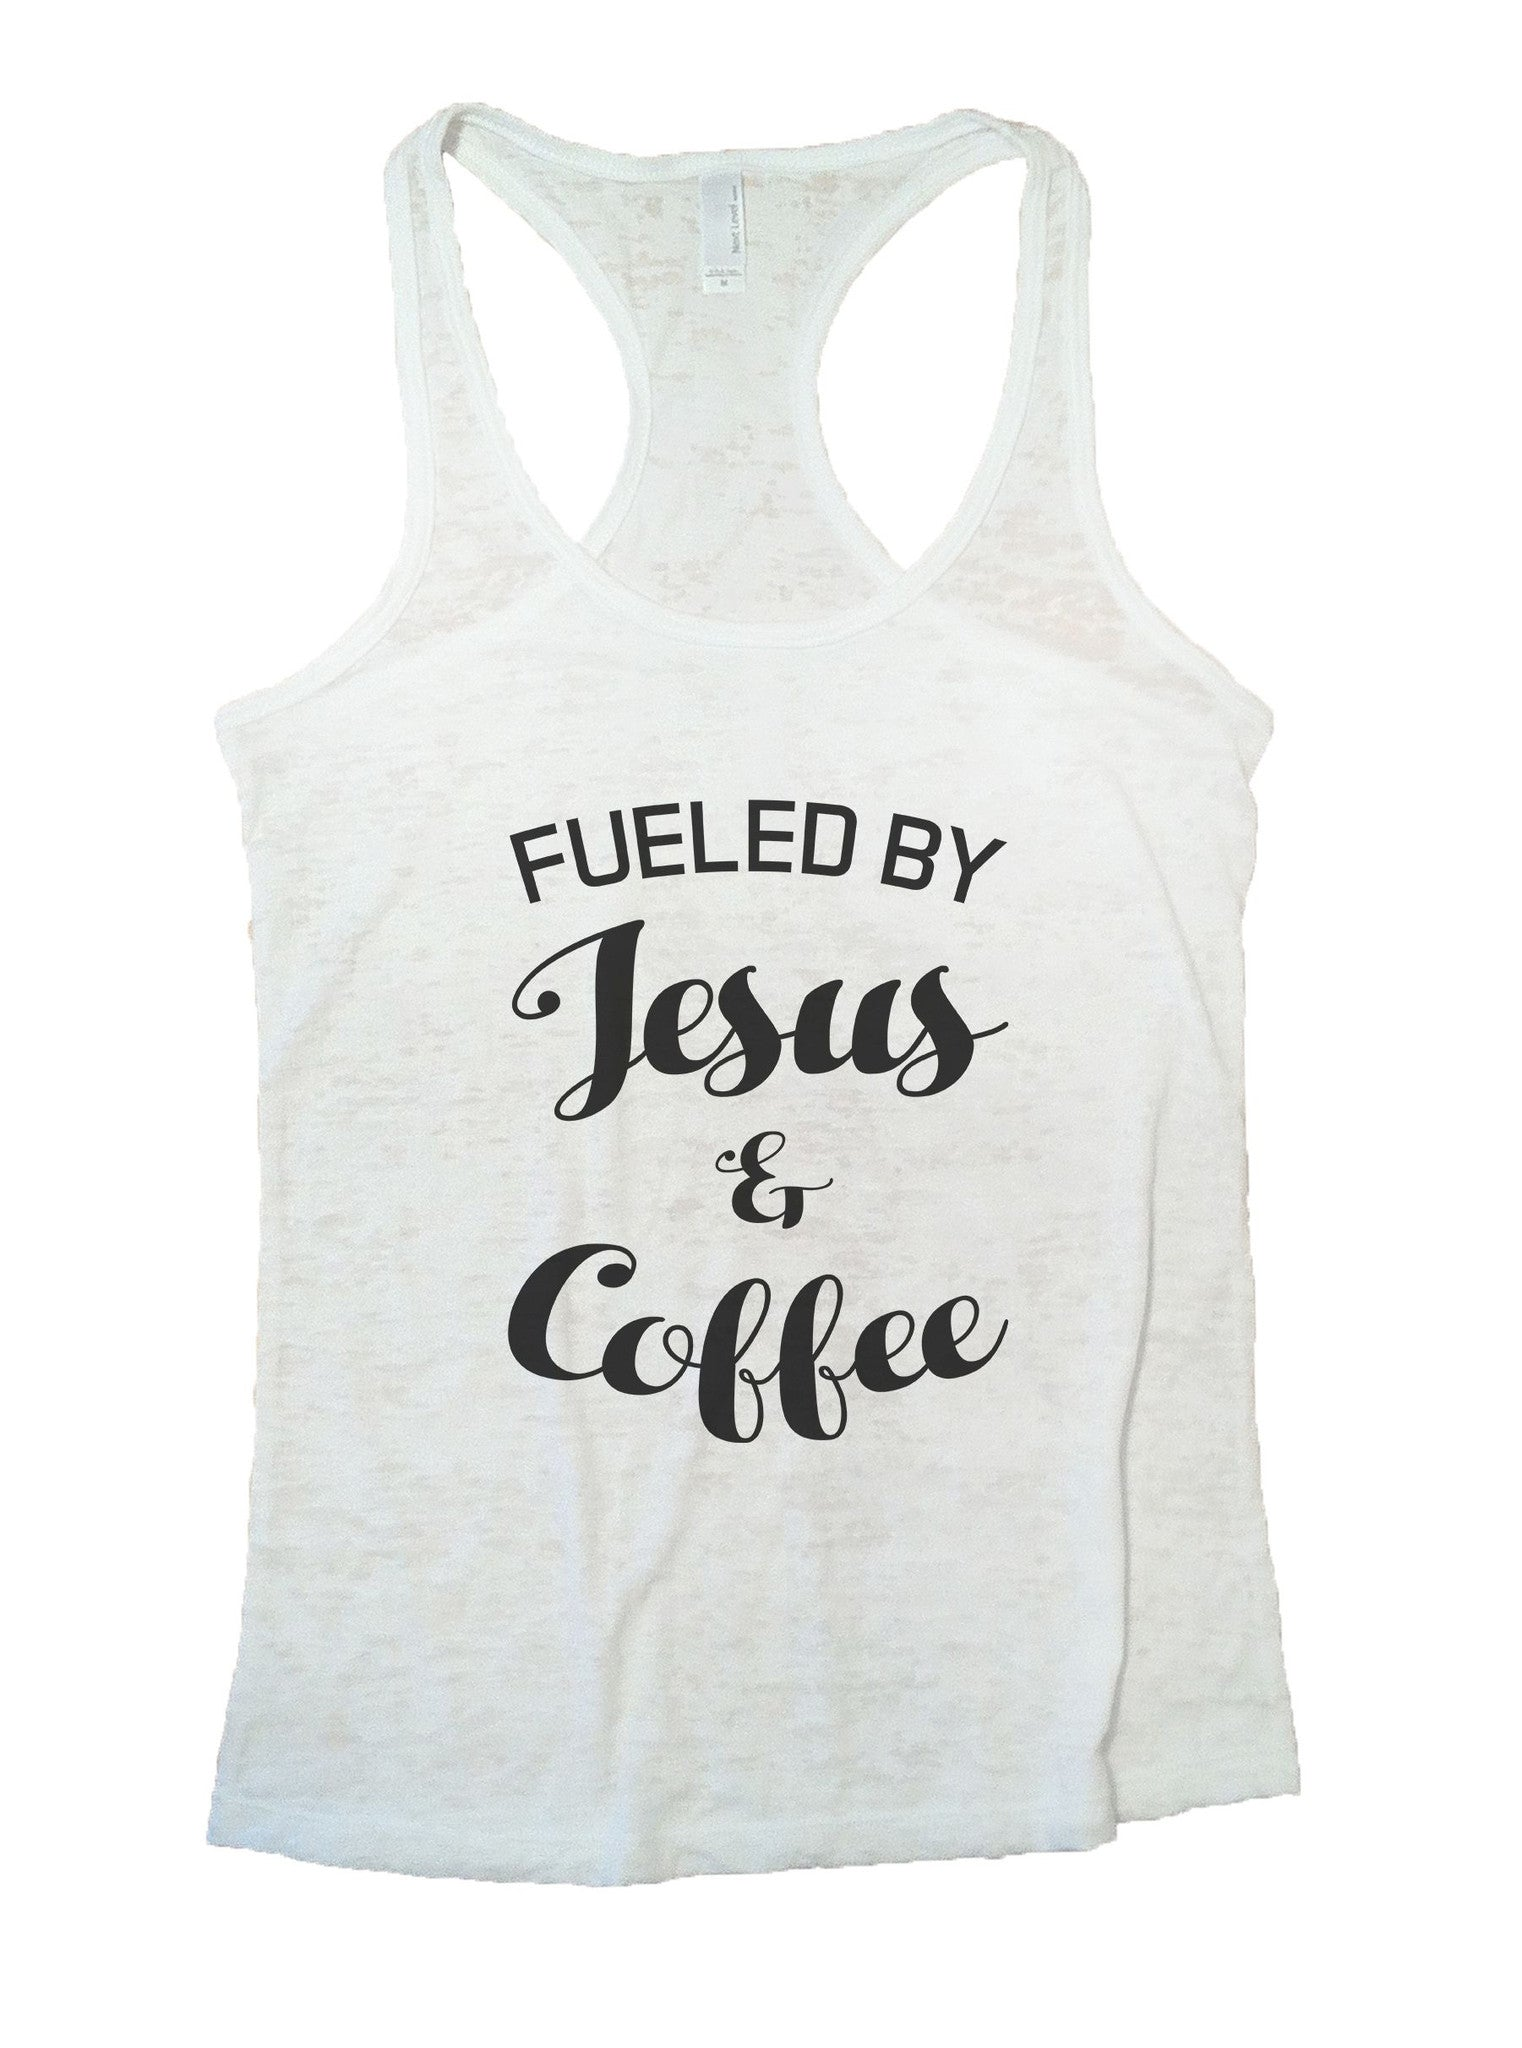 Fueled By Jesus & Coffee Burnout Tank Top By BurnoutTankTops.com - 1128 - Funny Shirts Tank Tops Burnouts and Triblends  - 6